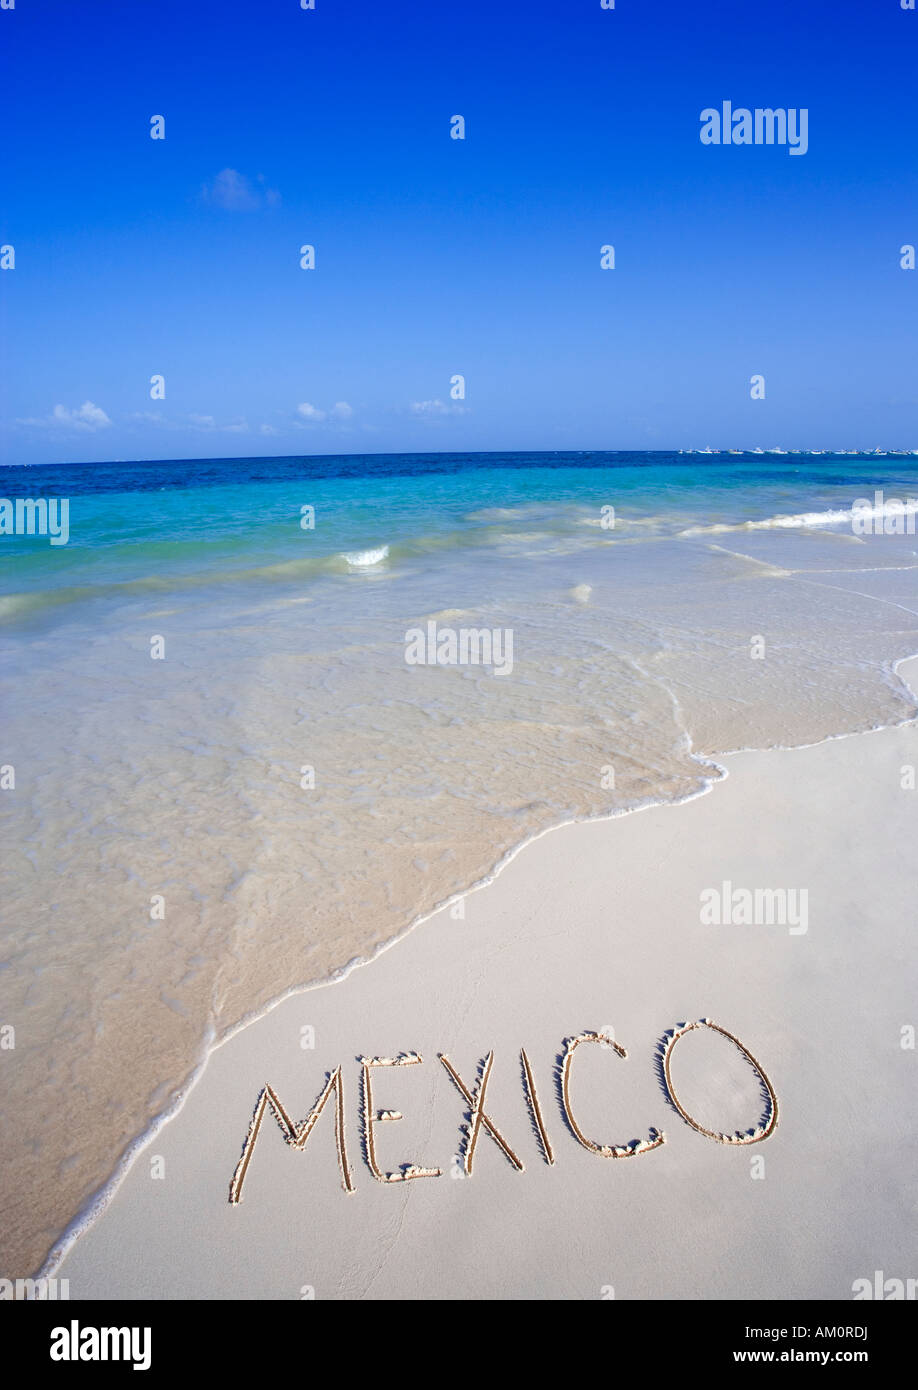 The word MEXICO written on white tropical beach in Playa del Carmen, Cancun, Mexico - Stock Image